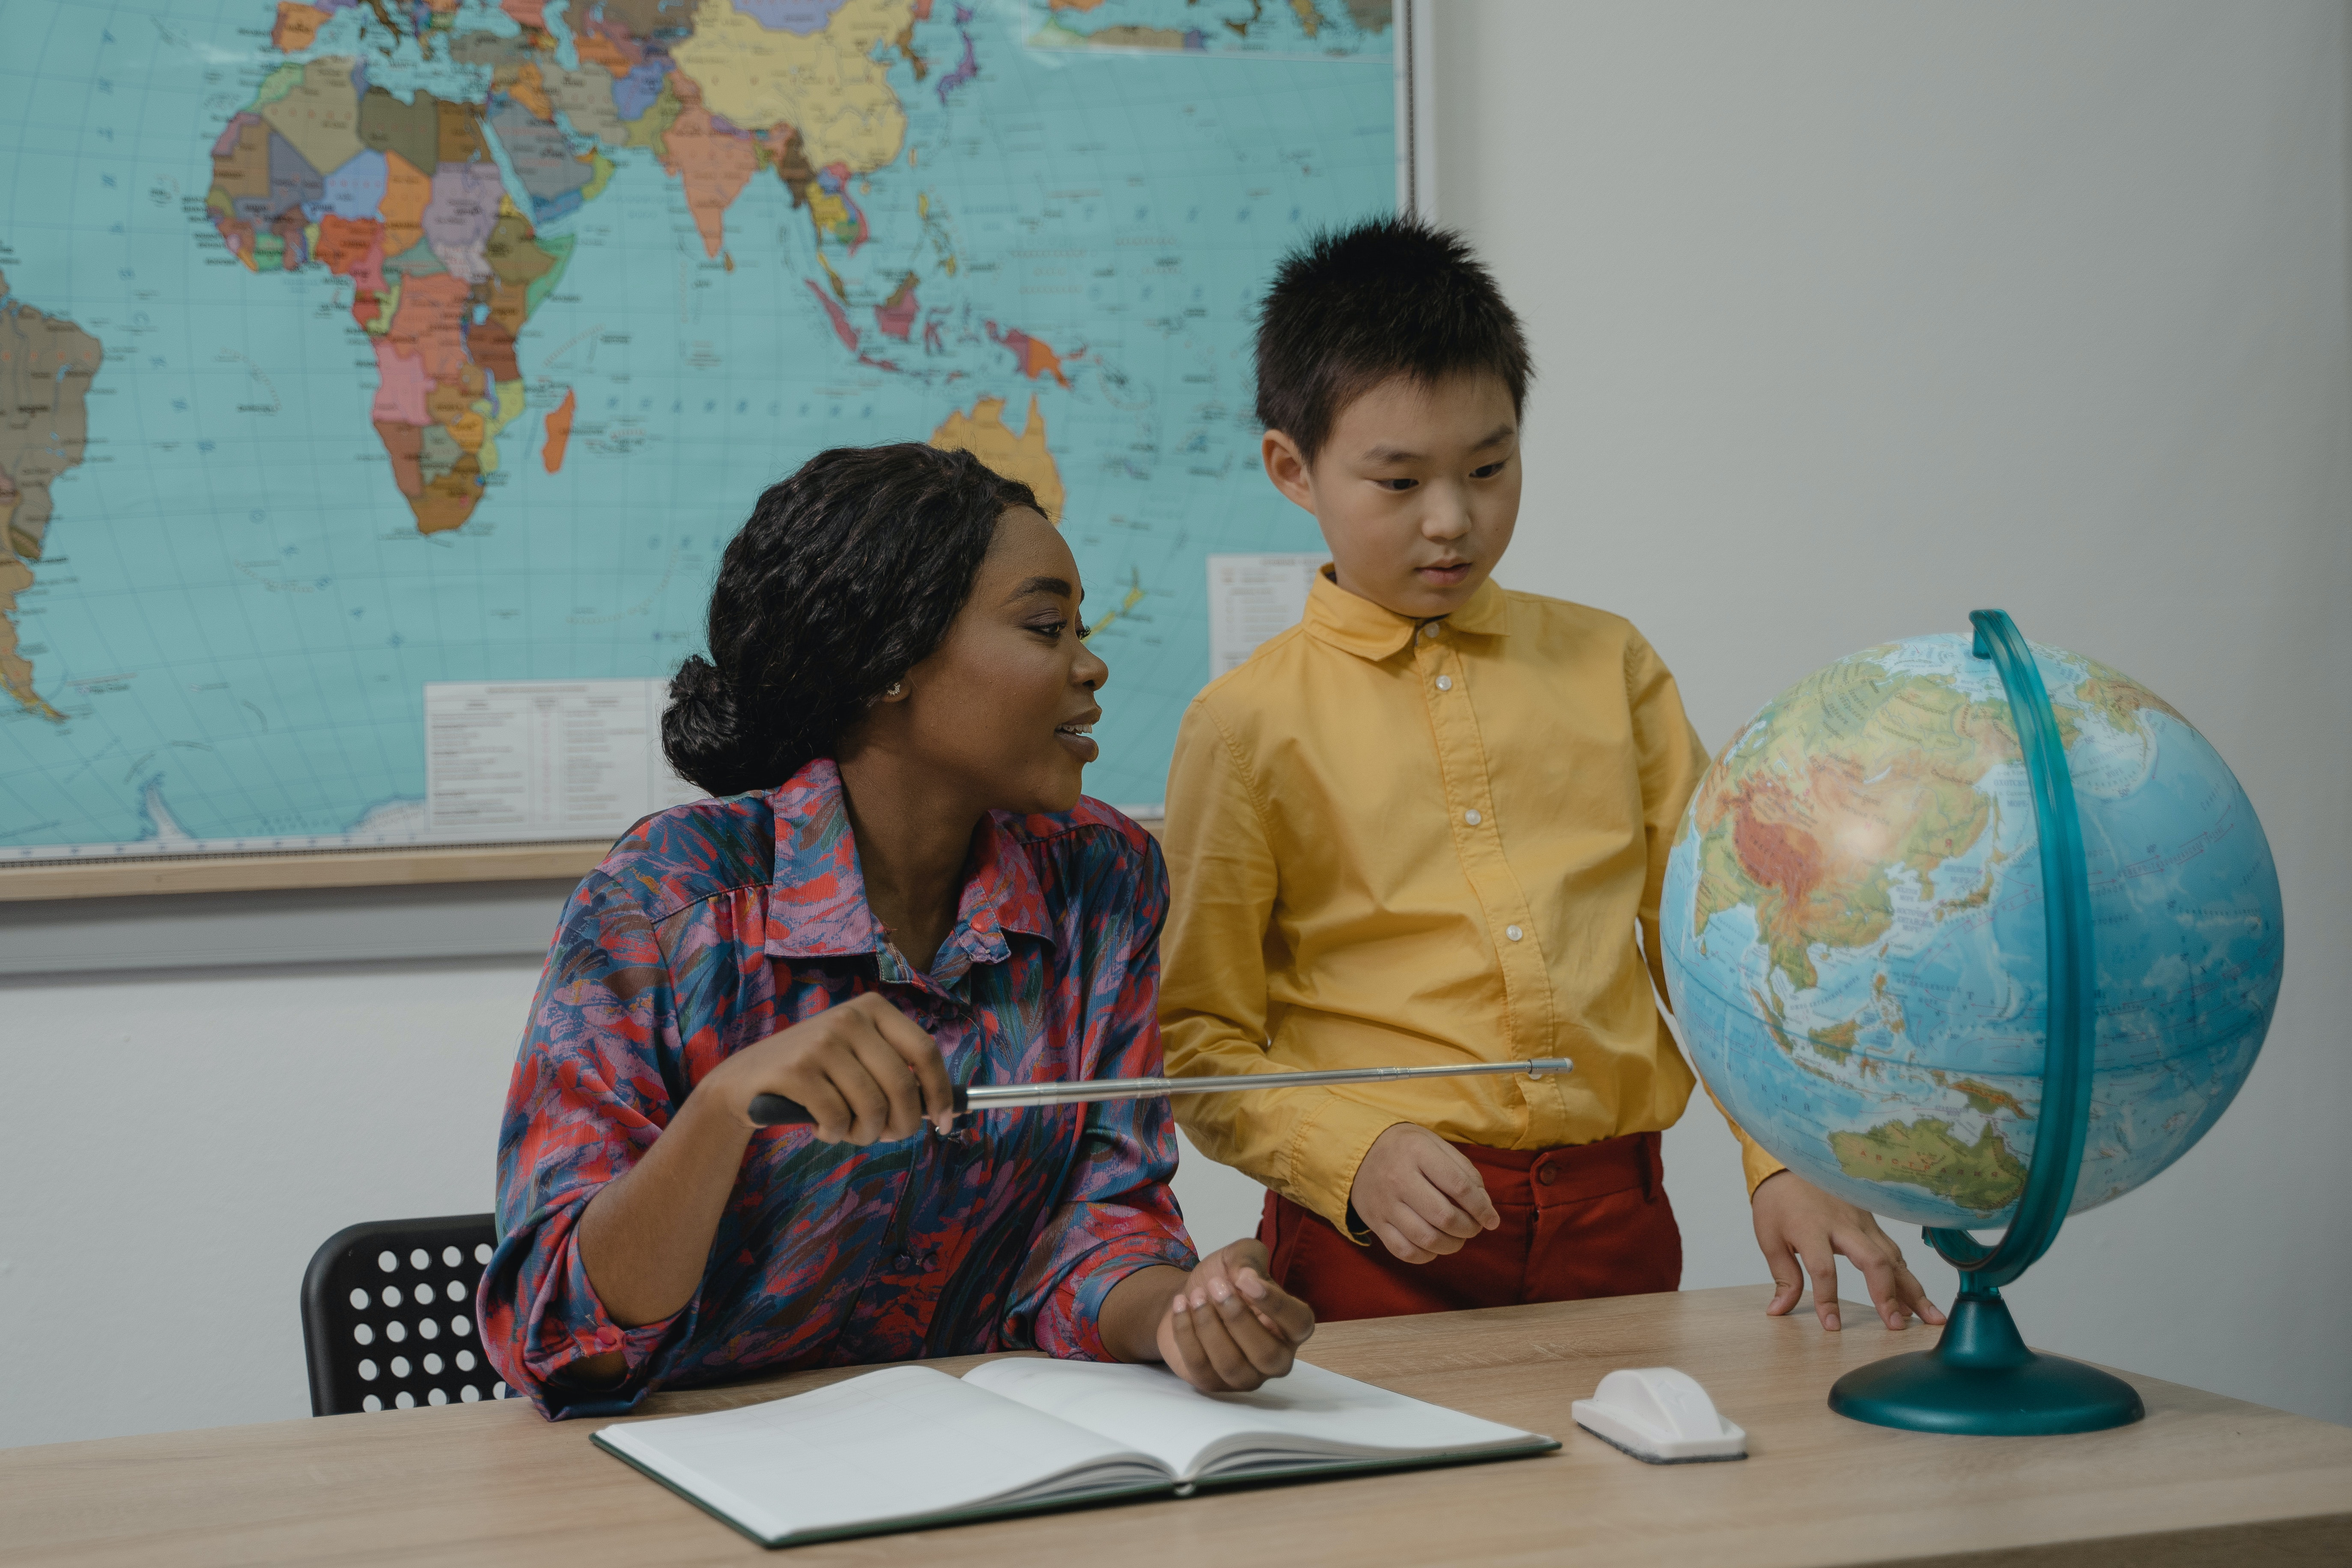 A teacher and a student looking at a globe in a classroom